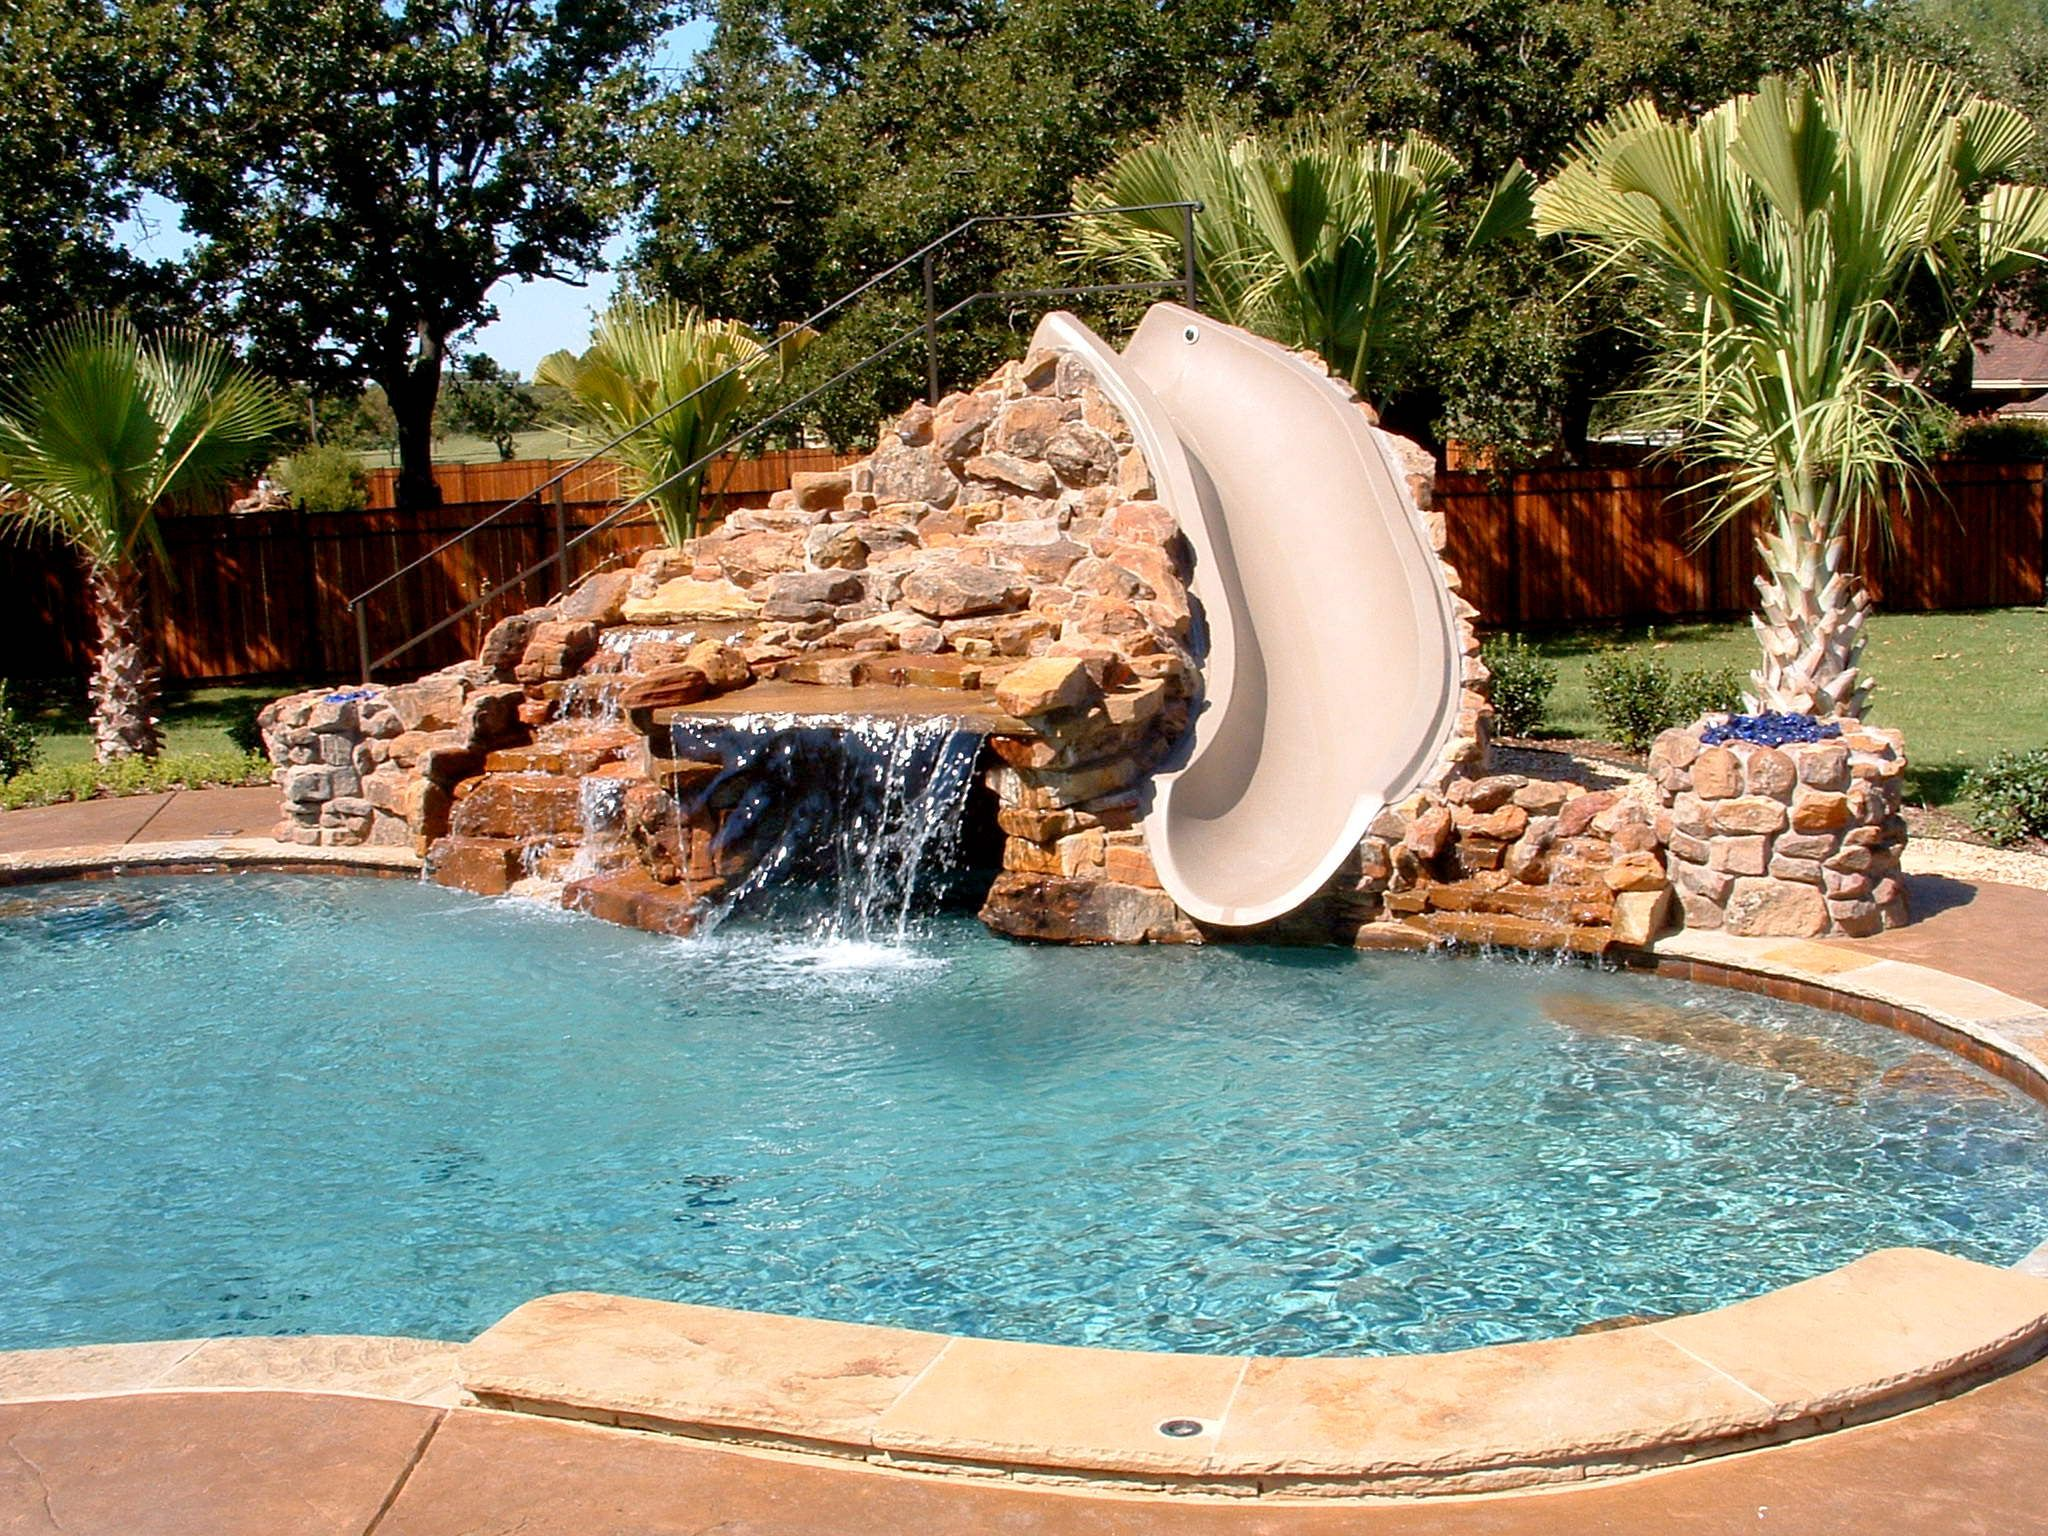 Swimming Pool Custom Features Beach Entry Slide Bench Additions Swimming Pool Layouts And Design With P Swimming Pool Designs Small Swimming Pools Pool Designs